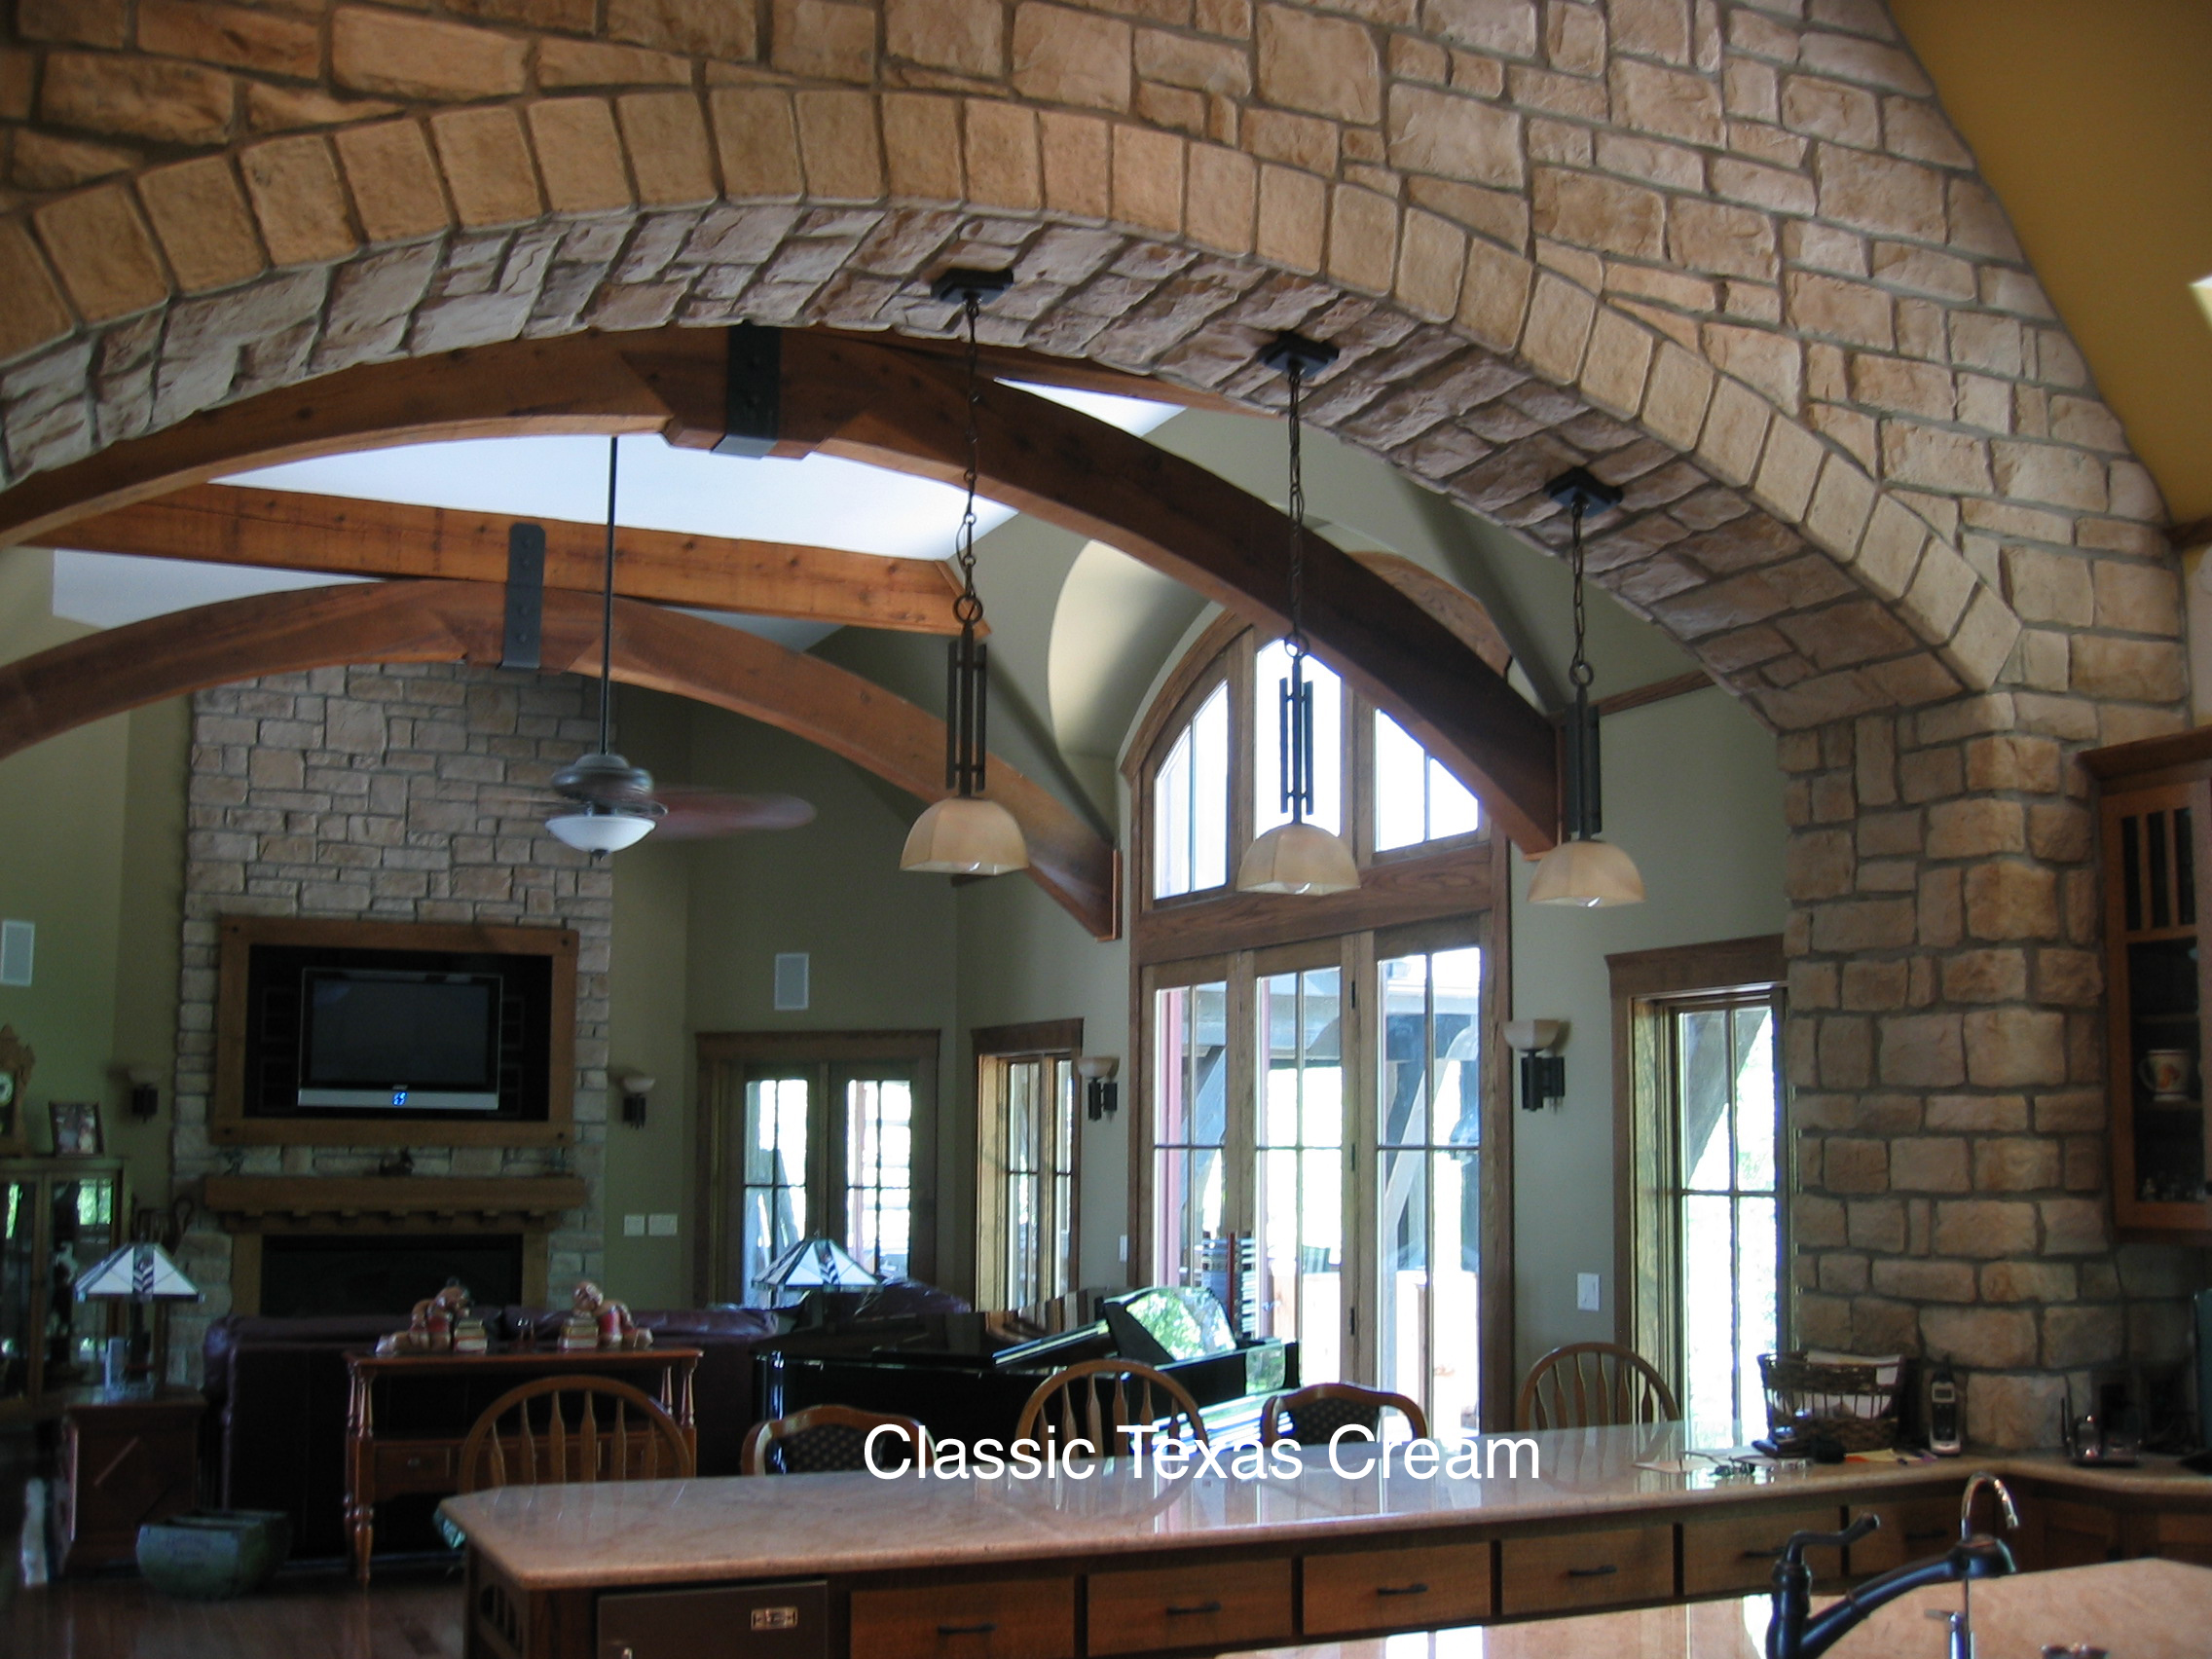 Eldorado Stone Manufactured Stone Veneer Fireplace Stone And Home